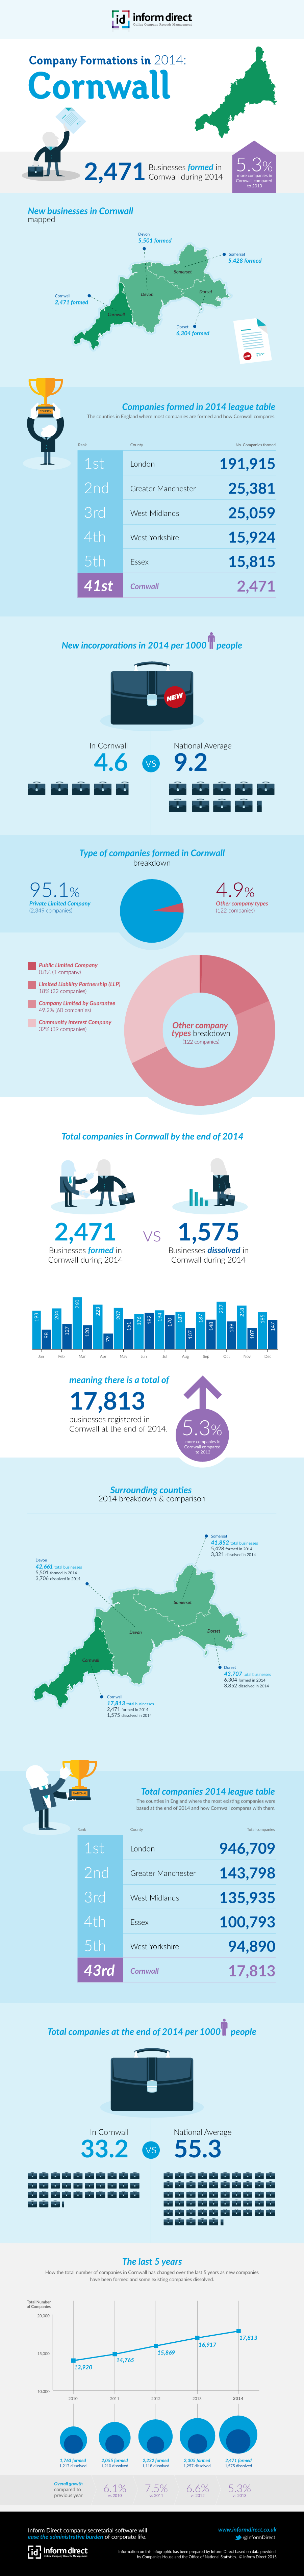 Inform Direct - Company Formations in Cornwall 2014 Infographic